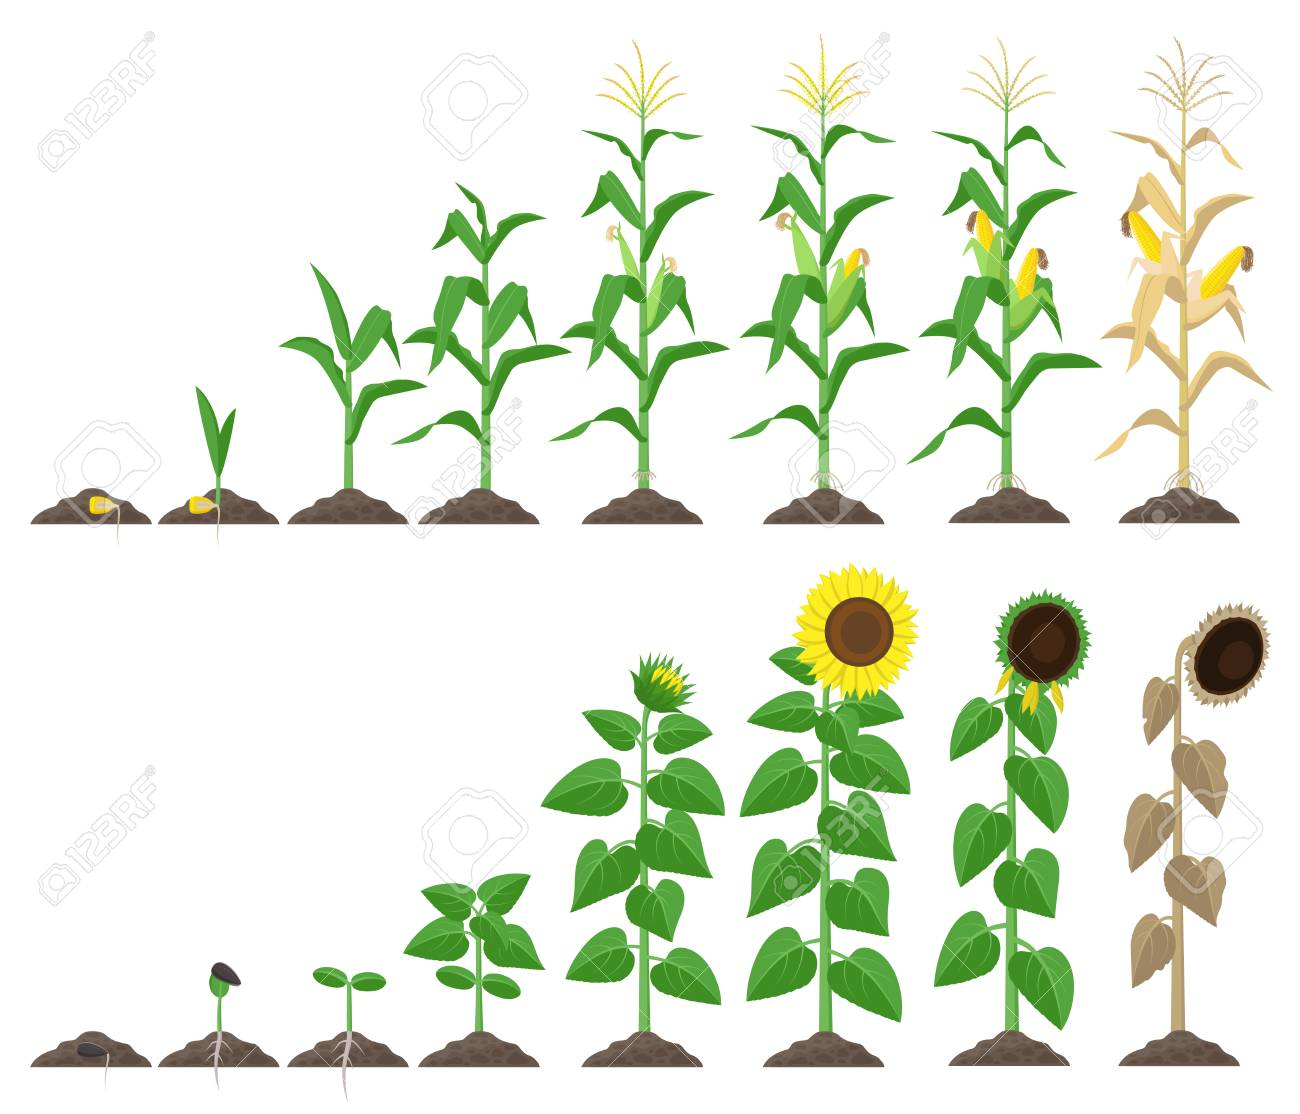 Corn plant and sunflower plant growing stages vector illustration in flat design. Maize and sunflower growth stages from seed to flowering and fruit-bearing Infographic elements isolated on white - 117528761